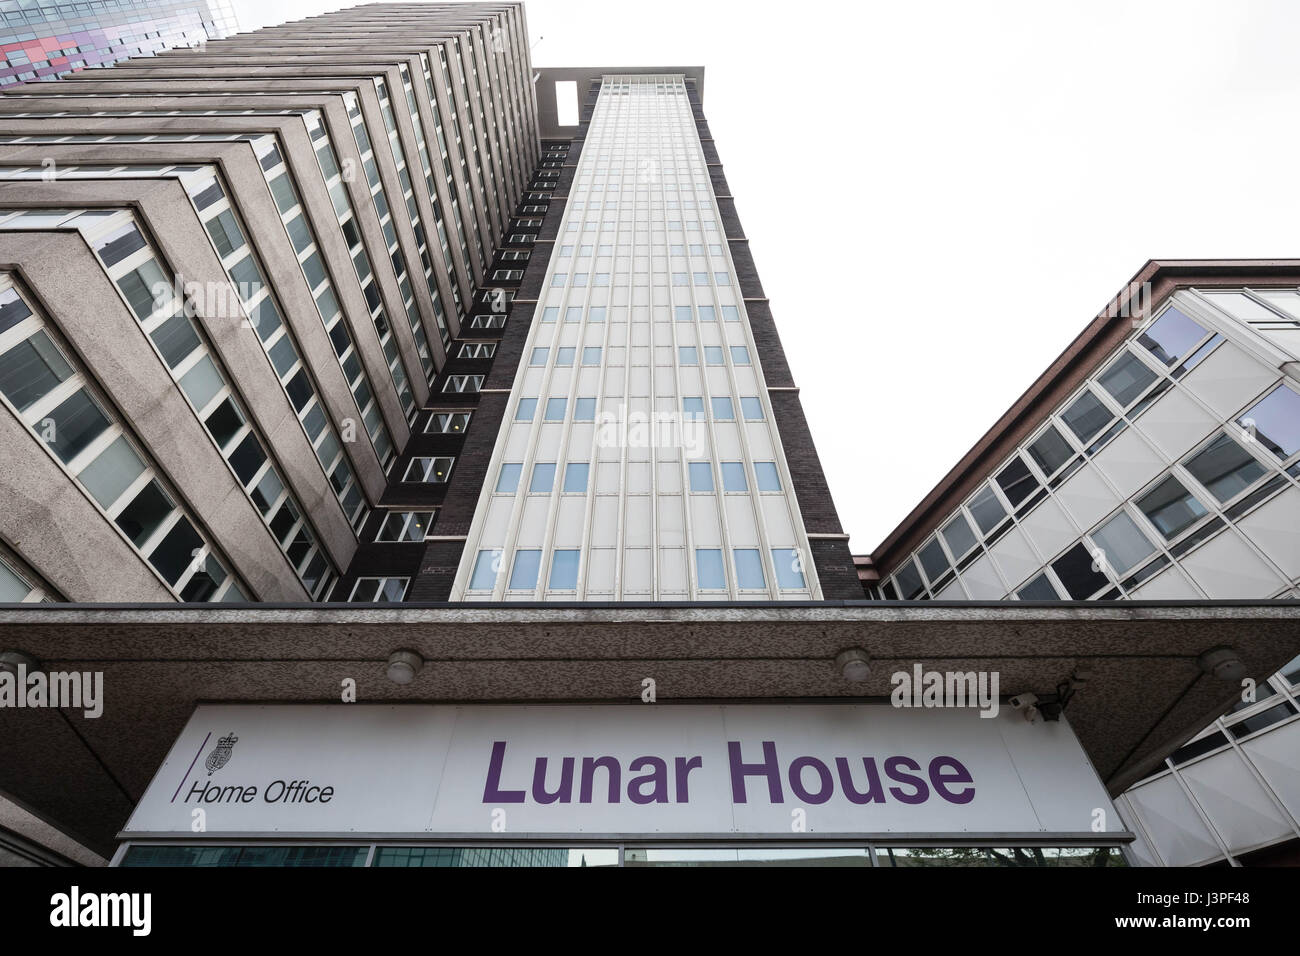 The Home Office UK Visas & Immigration Office at Lunar House in Croydon London, UK. - Stock Image